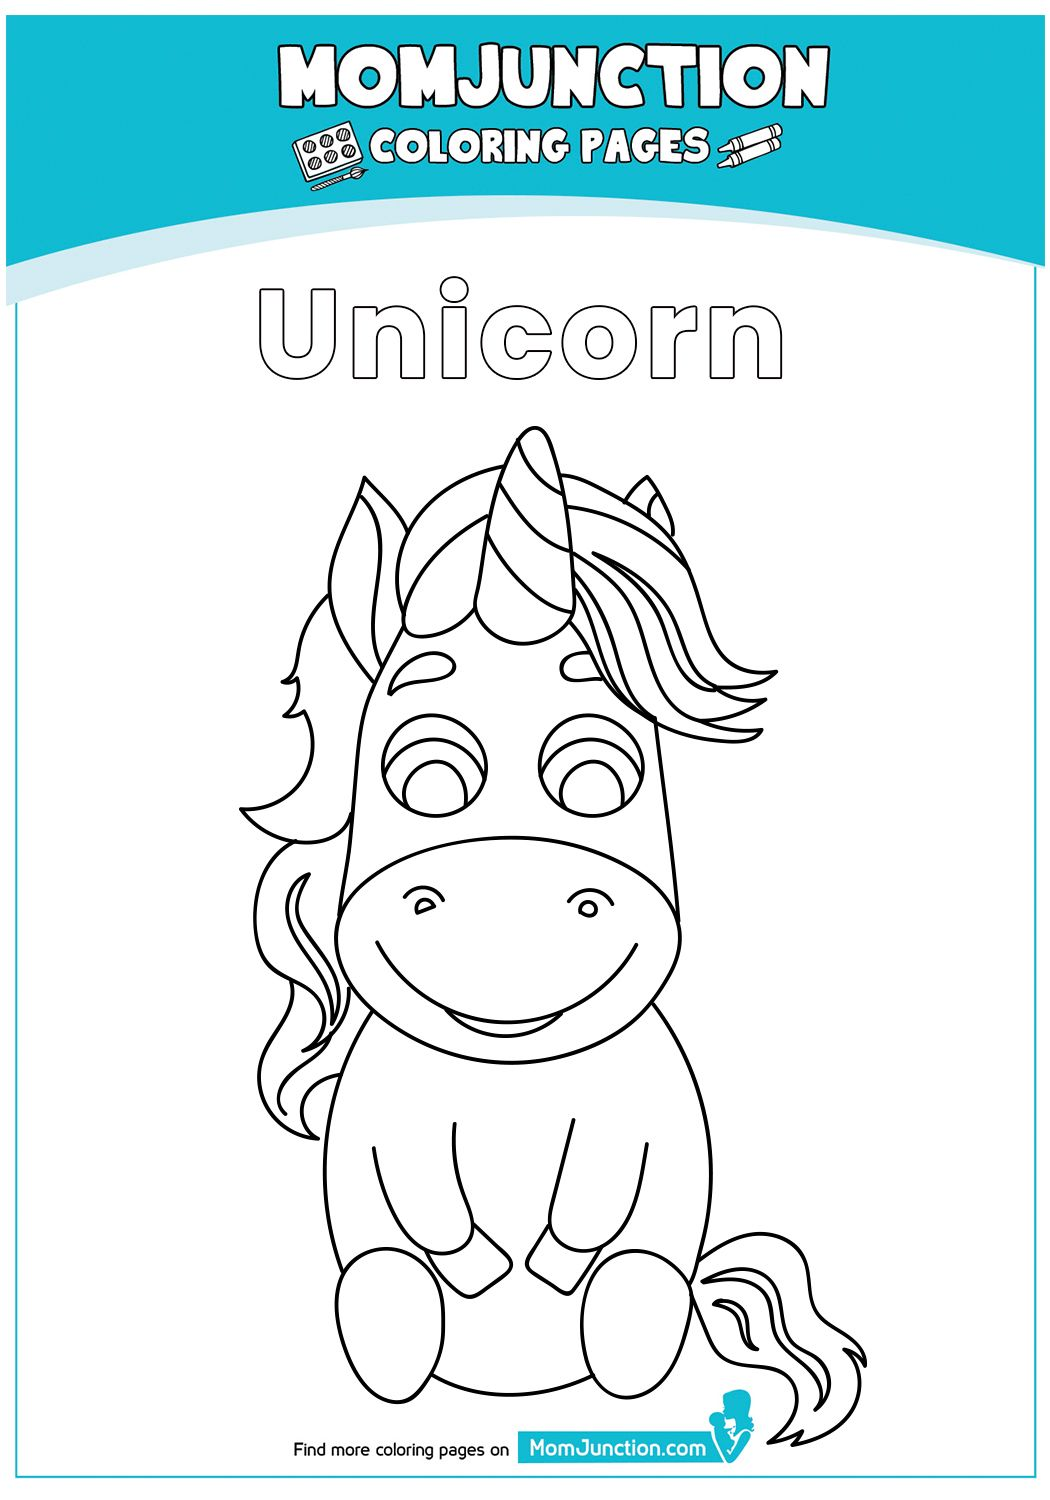 print coloring image - MomJunction | Unicorn coloring ...